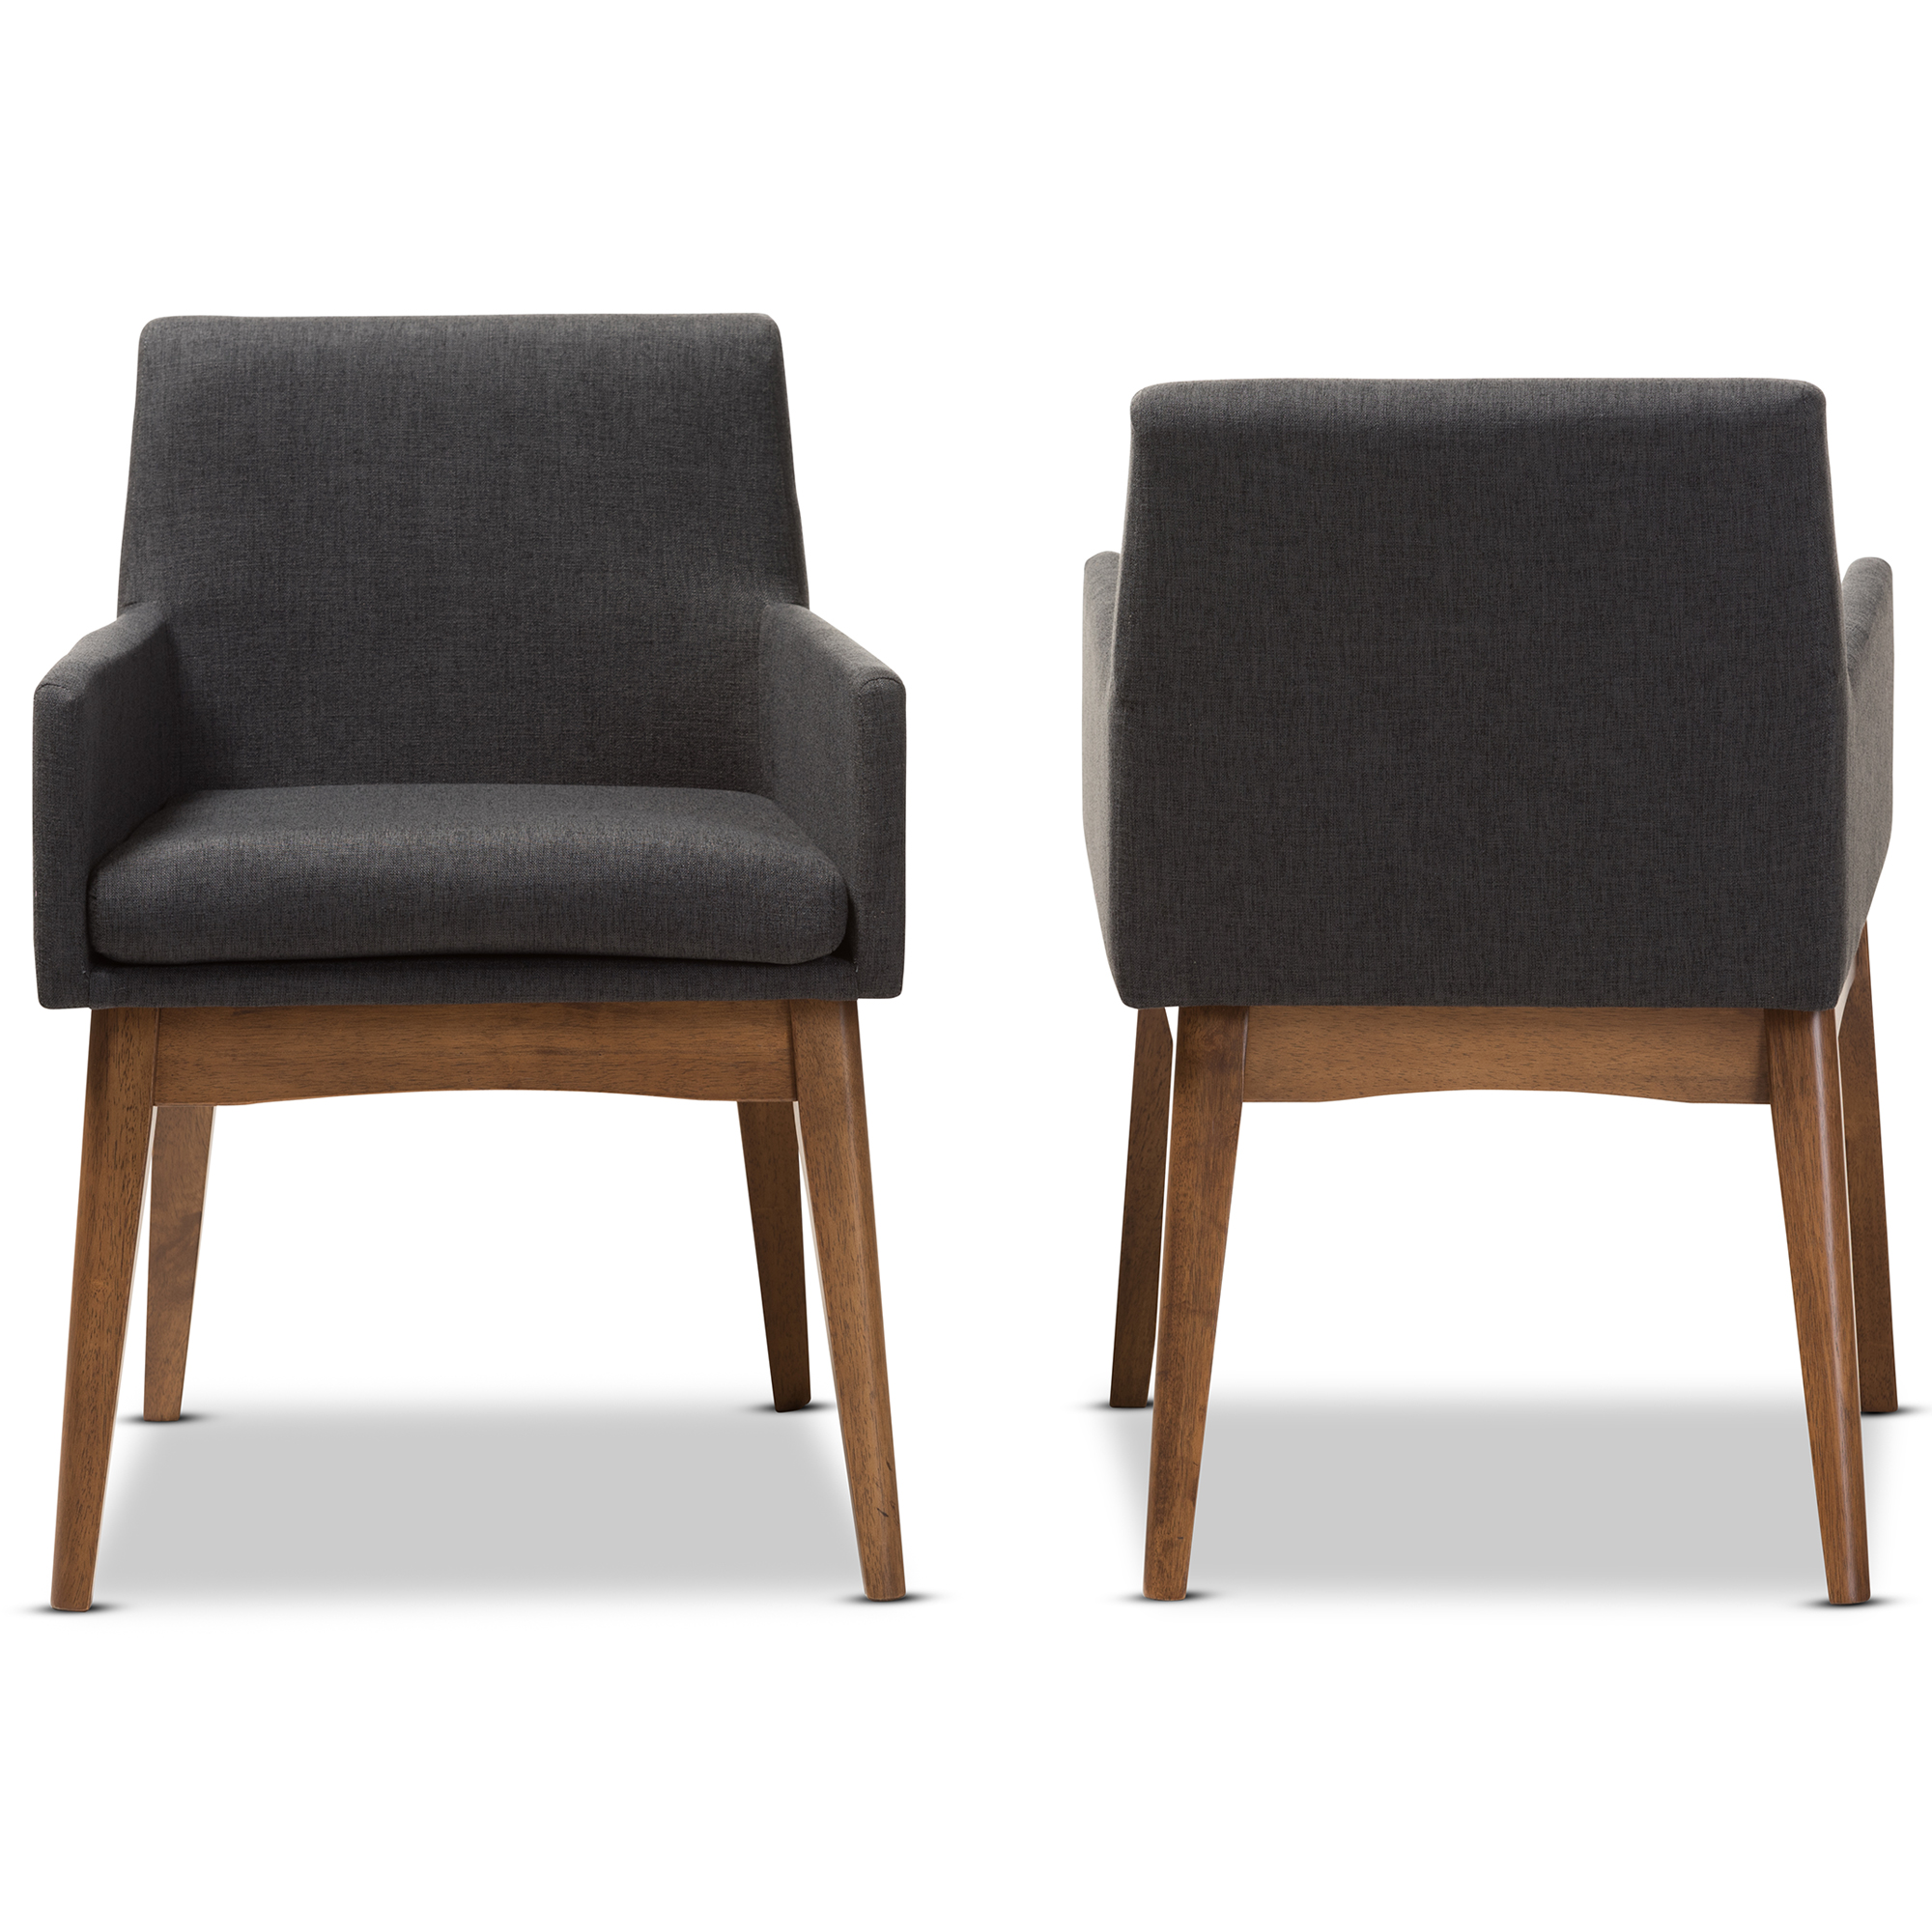 Charmant ... Baxton Studio Nexus Mid Century Modern Walnut Wood Finishing Dark Grey  Fabric Dining Armchair ...